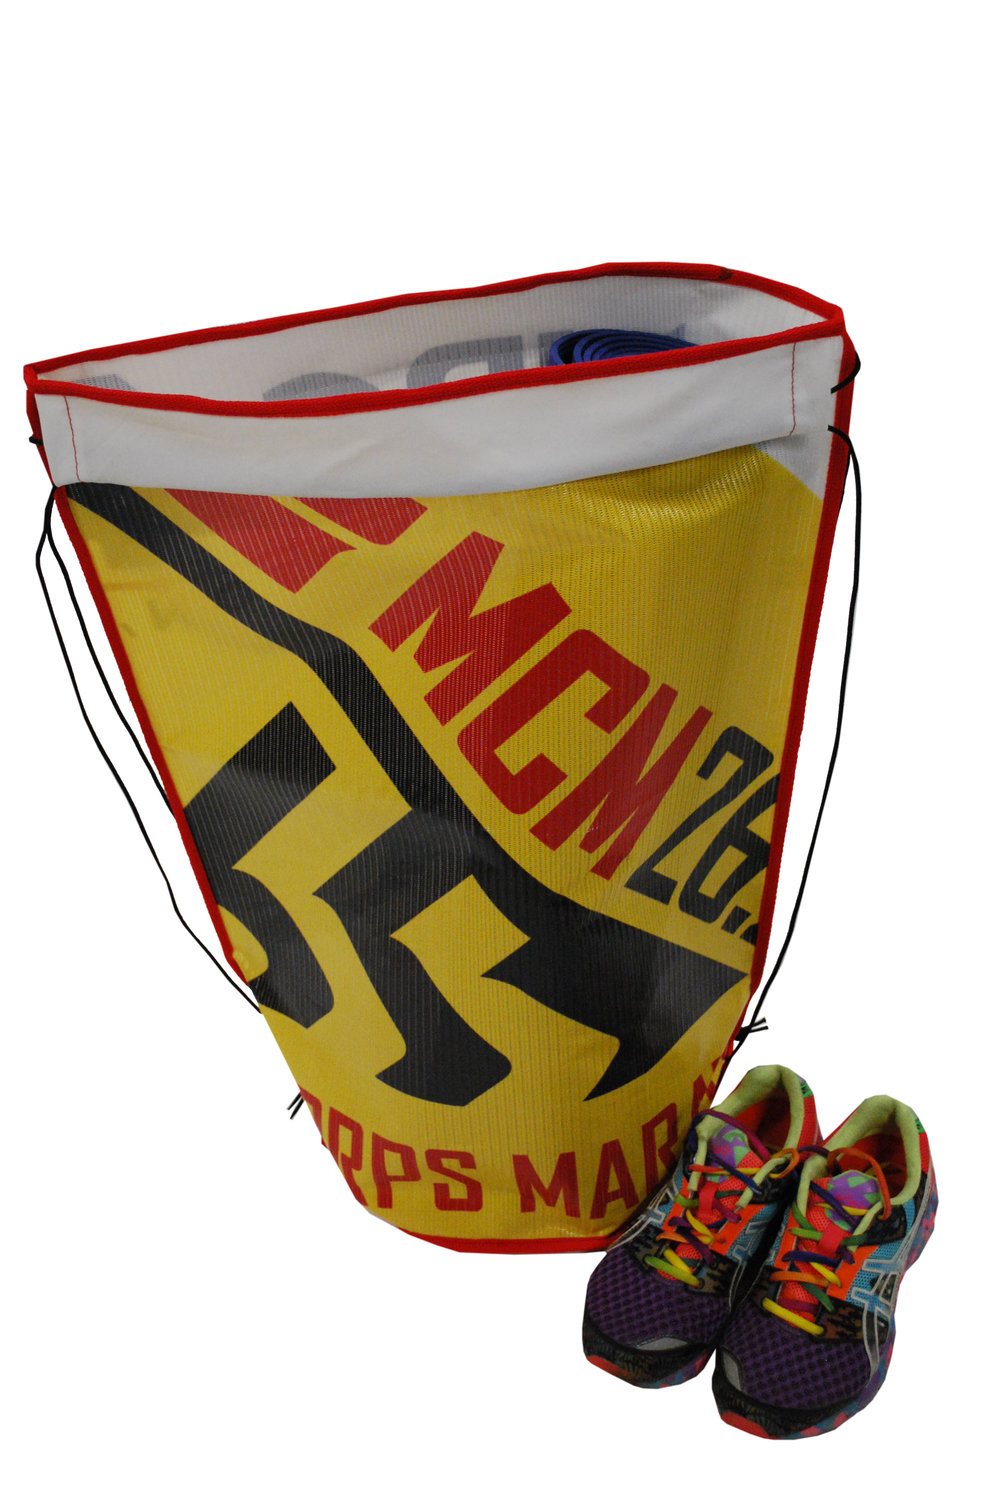 Mesh gear bag made for runners and athletes from old Marine Corps Marathon banners